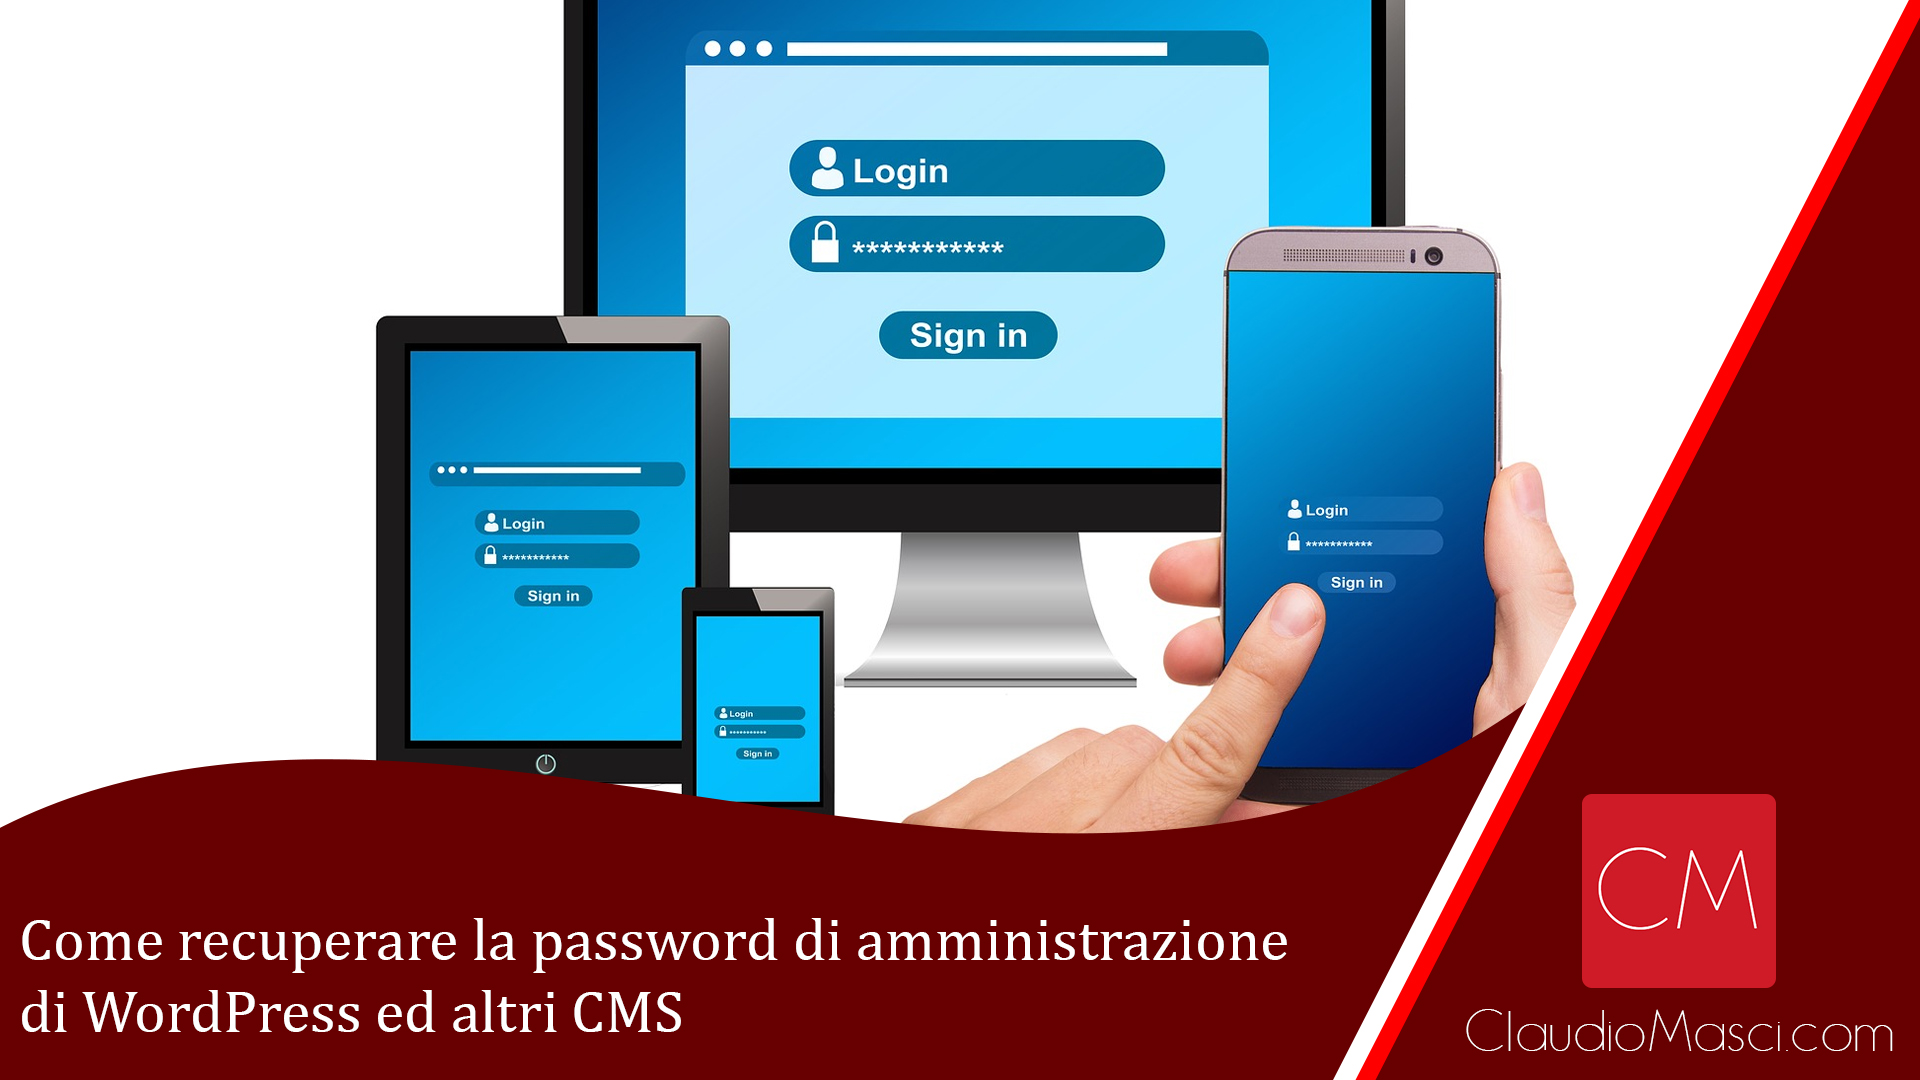 Come recuperare la password di amministrazione di WordPress ed altri CMS